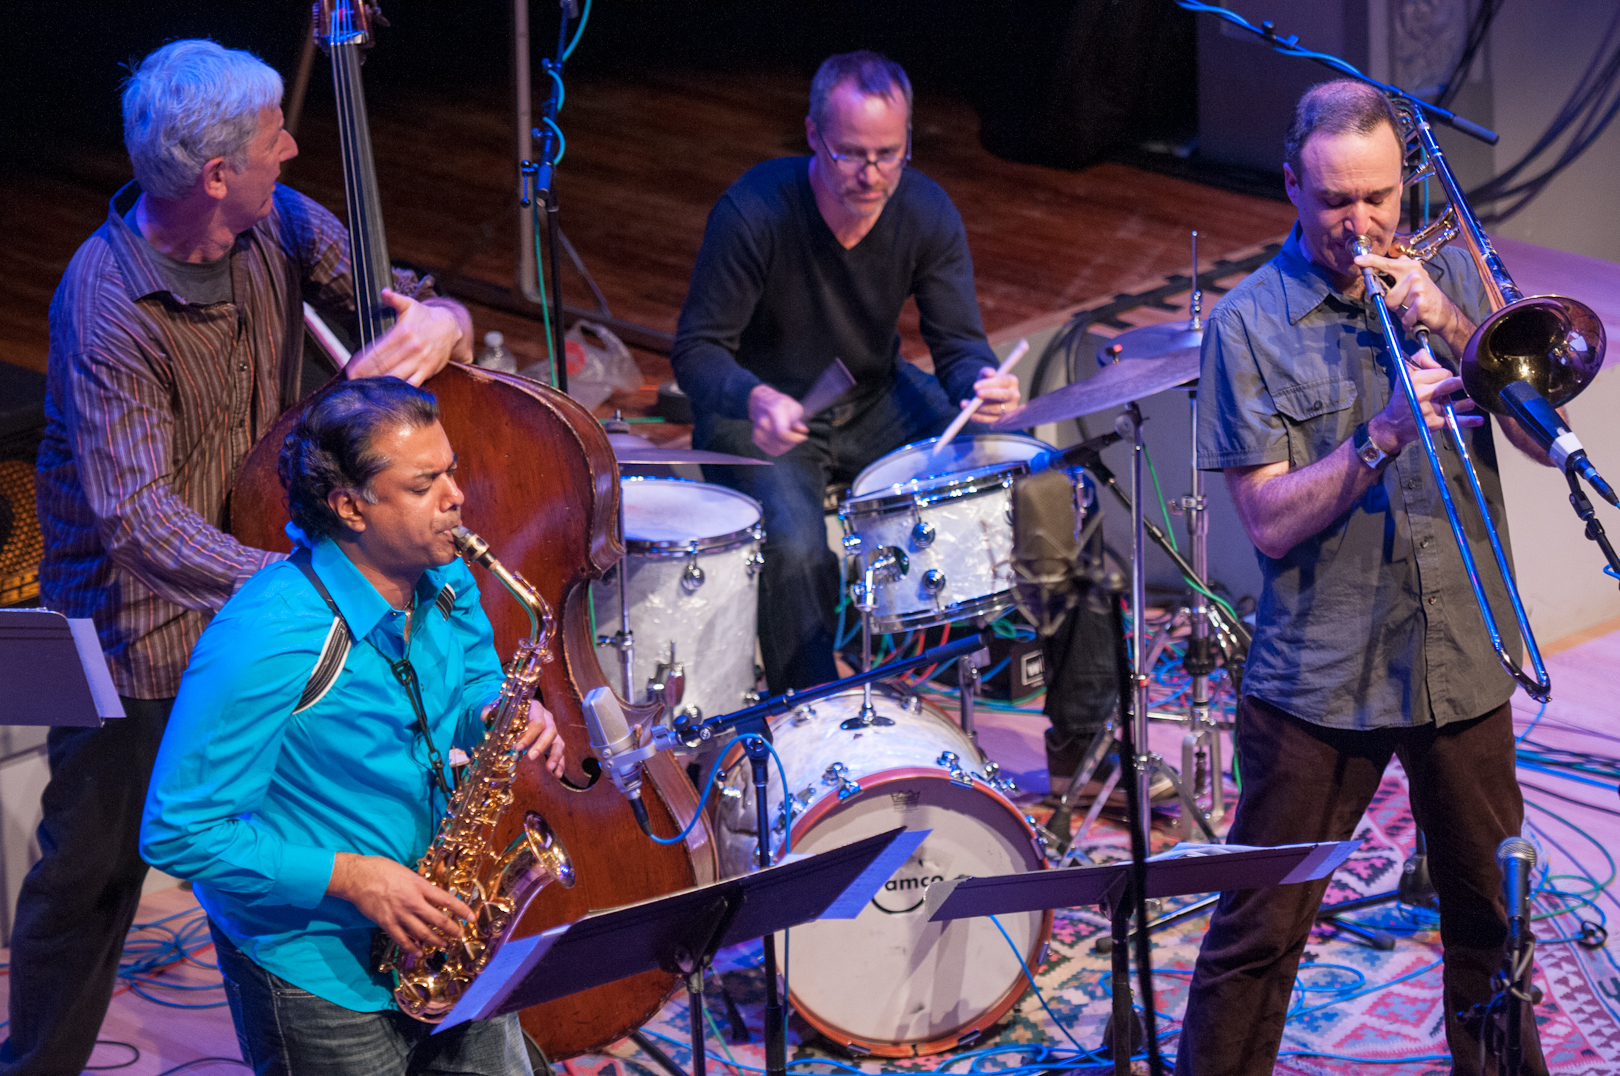 Rudresh Mahanthappa, Mark Dresser, Michael Sarin, and Michael Dessen with the Mark Dresser Quintet at the Vision Festival 2012